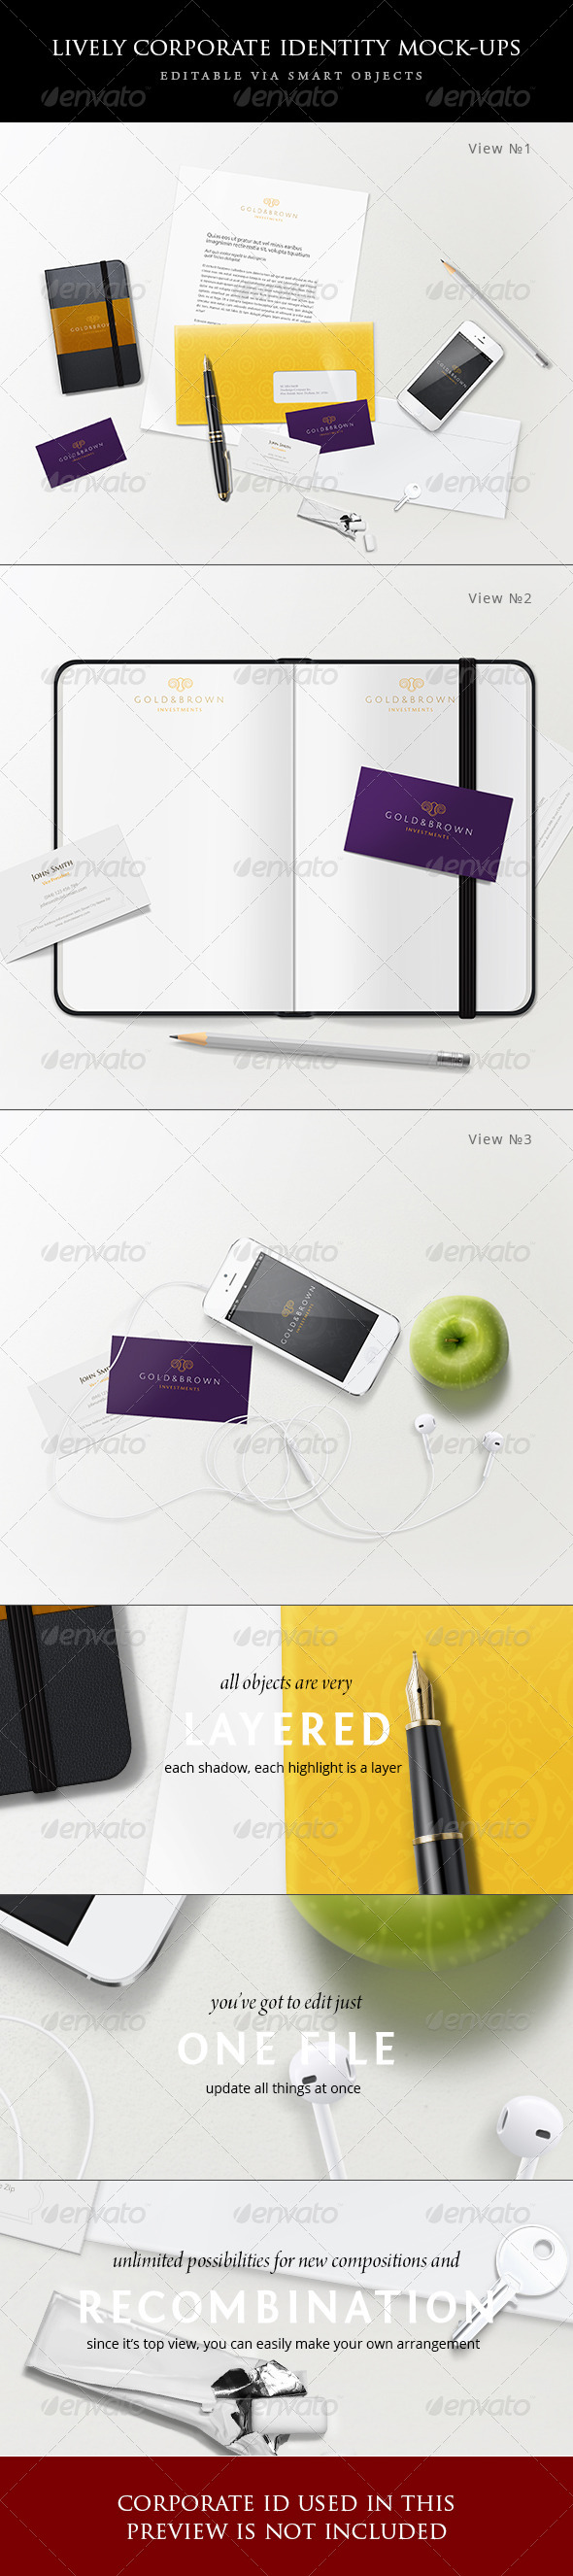 GraphicRiver Lively corporate stationery branding mock-ups 5299174